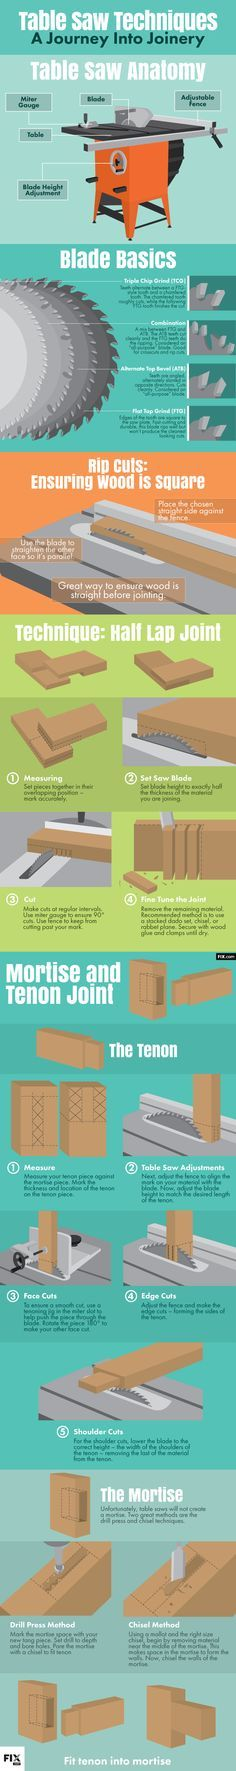 Joining wood can be simple on a table saw. Create seamless, beautiful joints for all your construction projects.